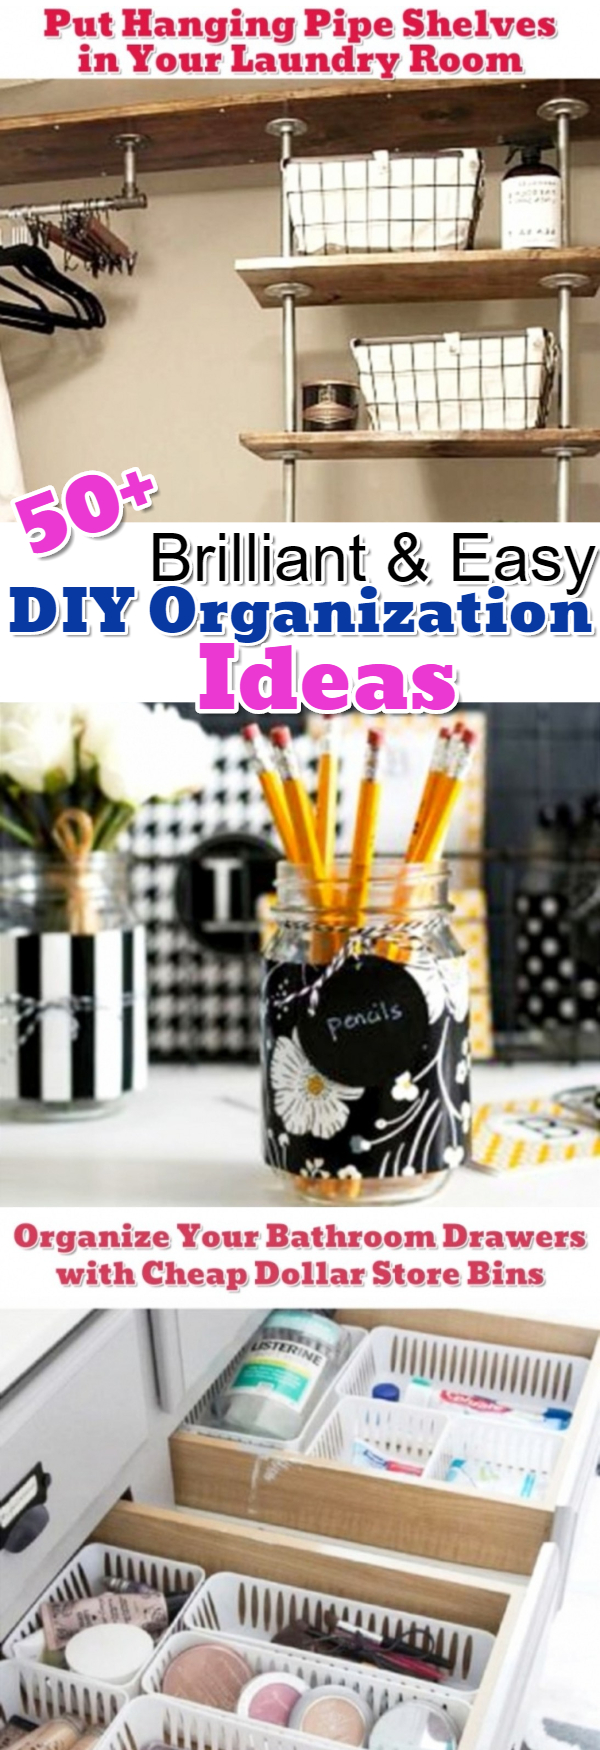 Some of the best getting organized help and DIY ideas I've seen on Pinterest Get organized!